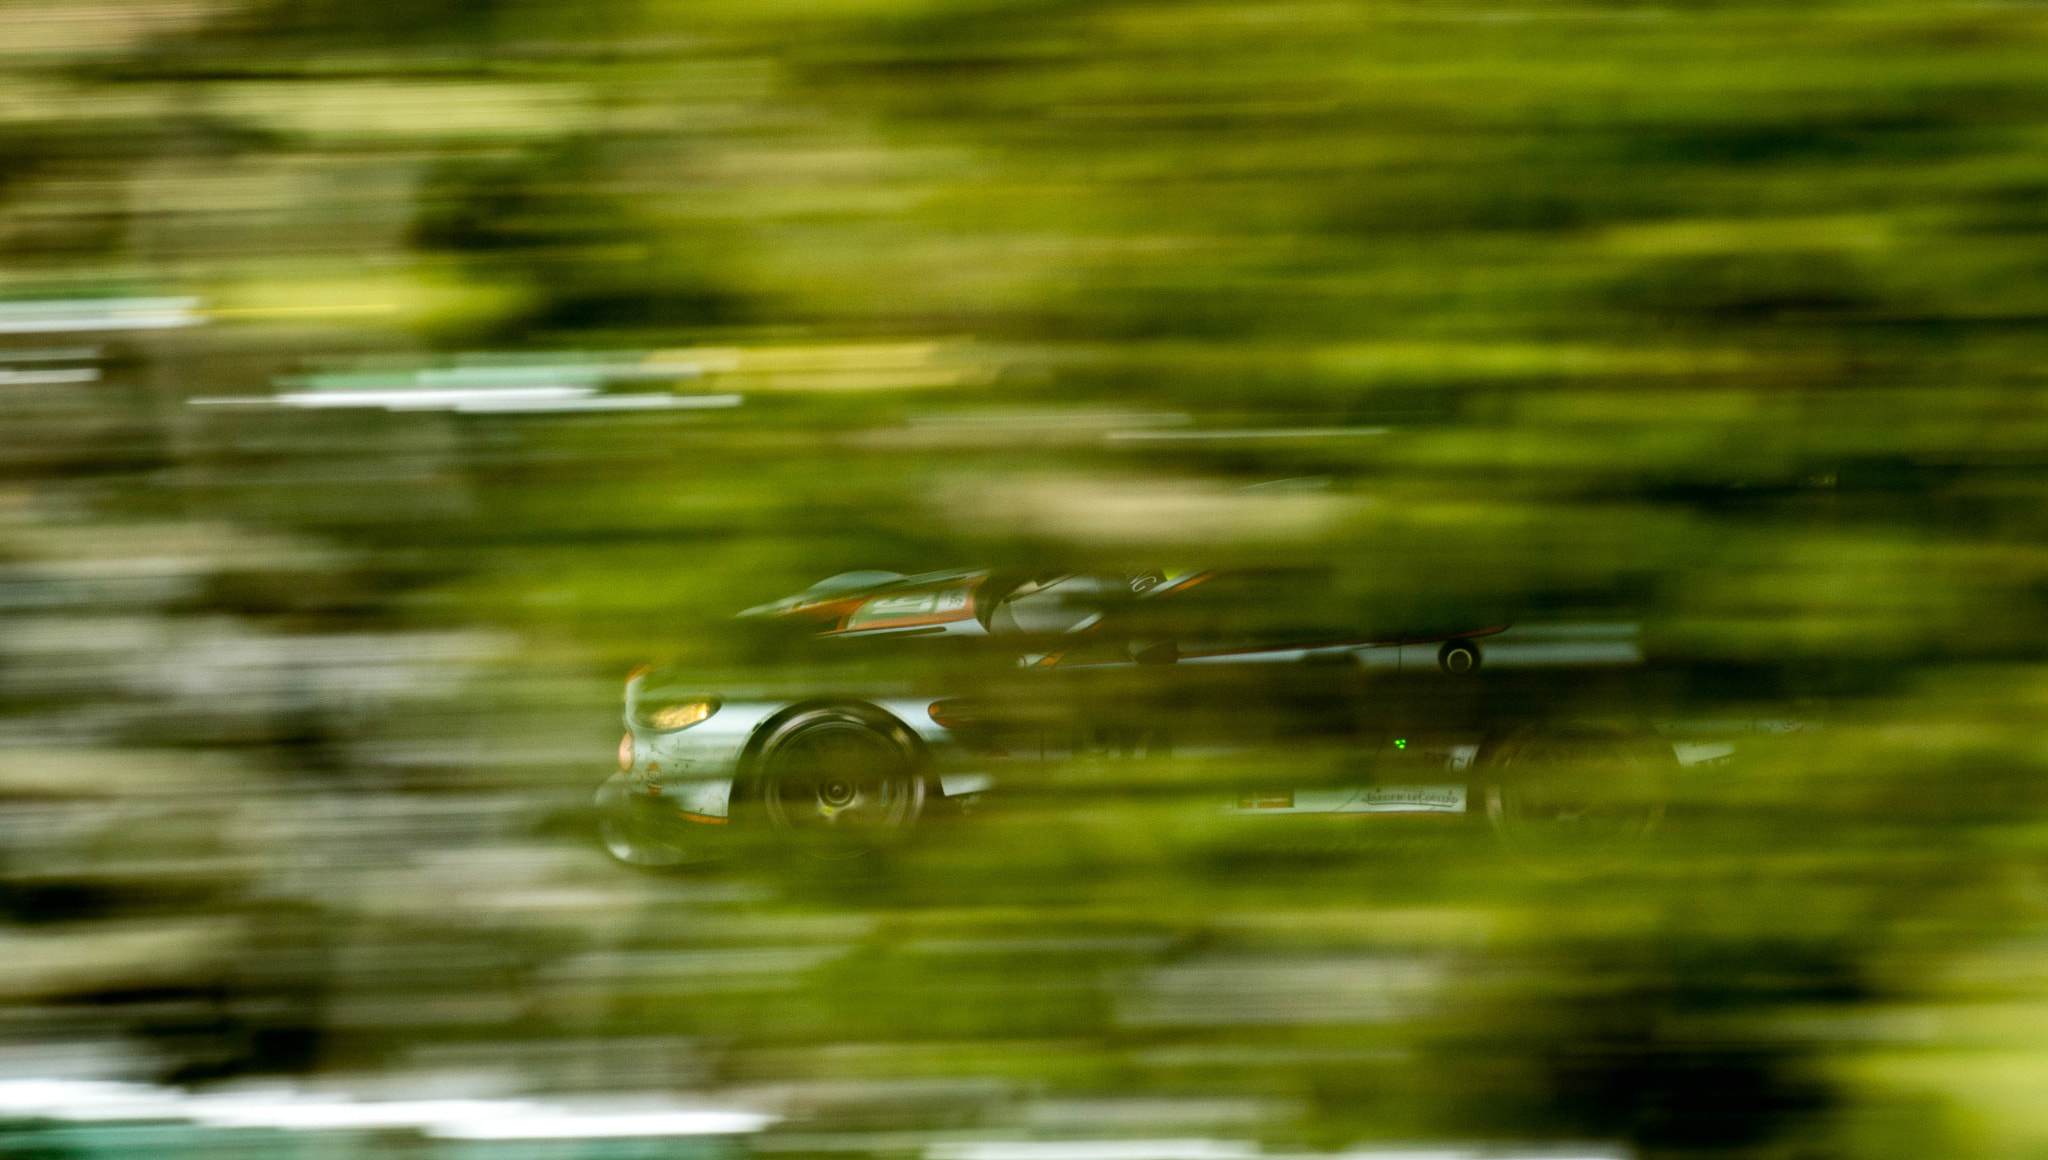 Photograph Aston Martin Racing by Victor Eleutério on 500px